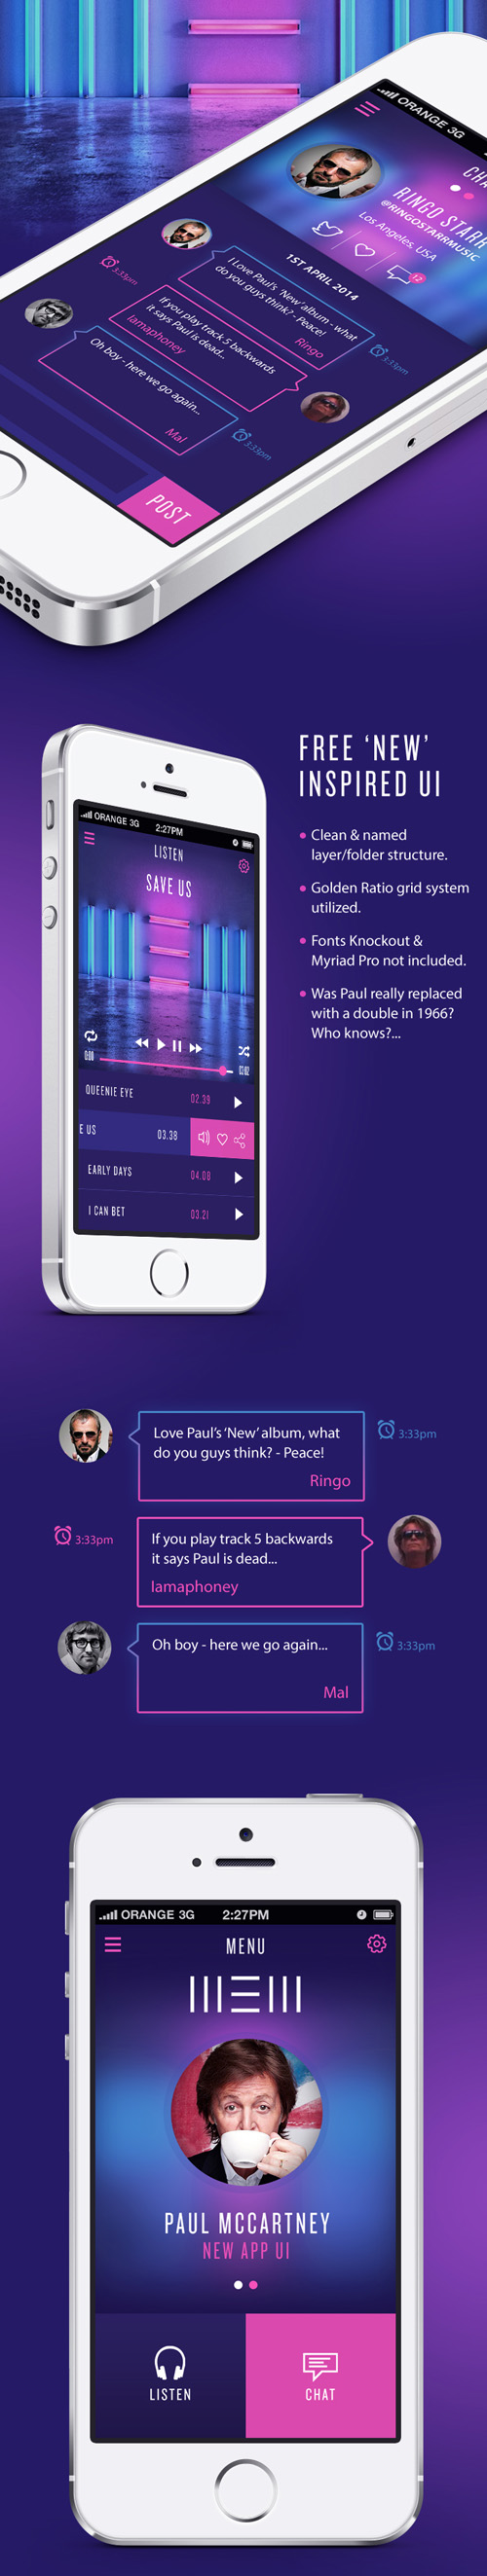 Paul McCartney 'New' inspired Free app UI PSD